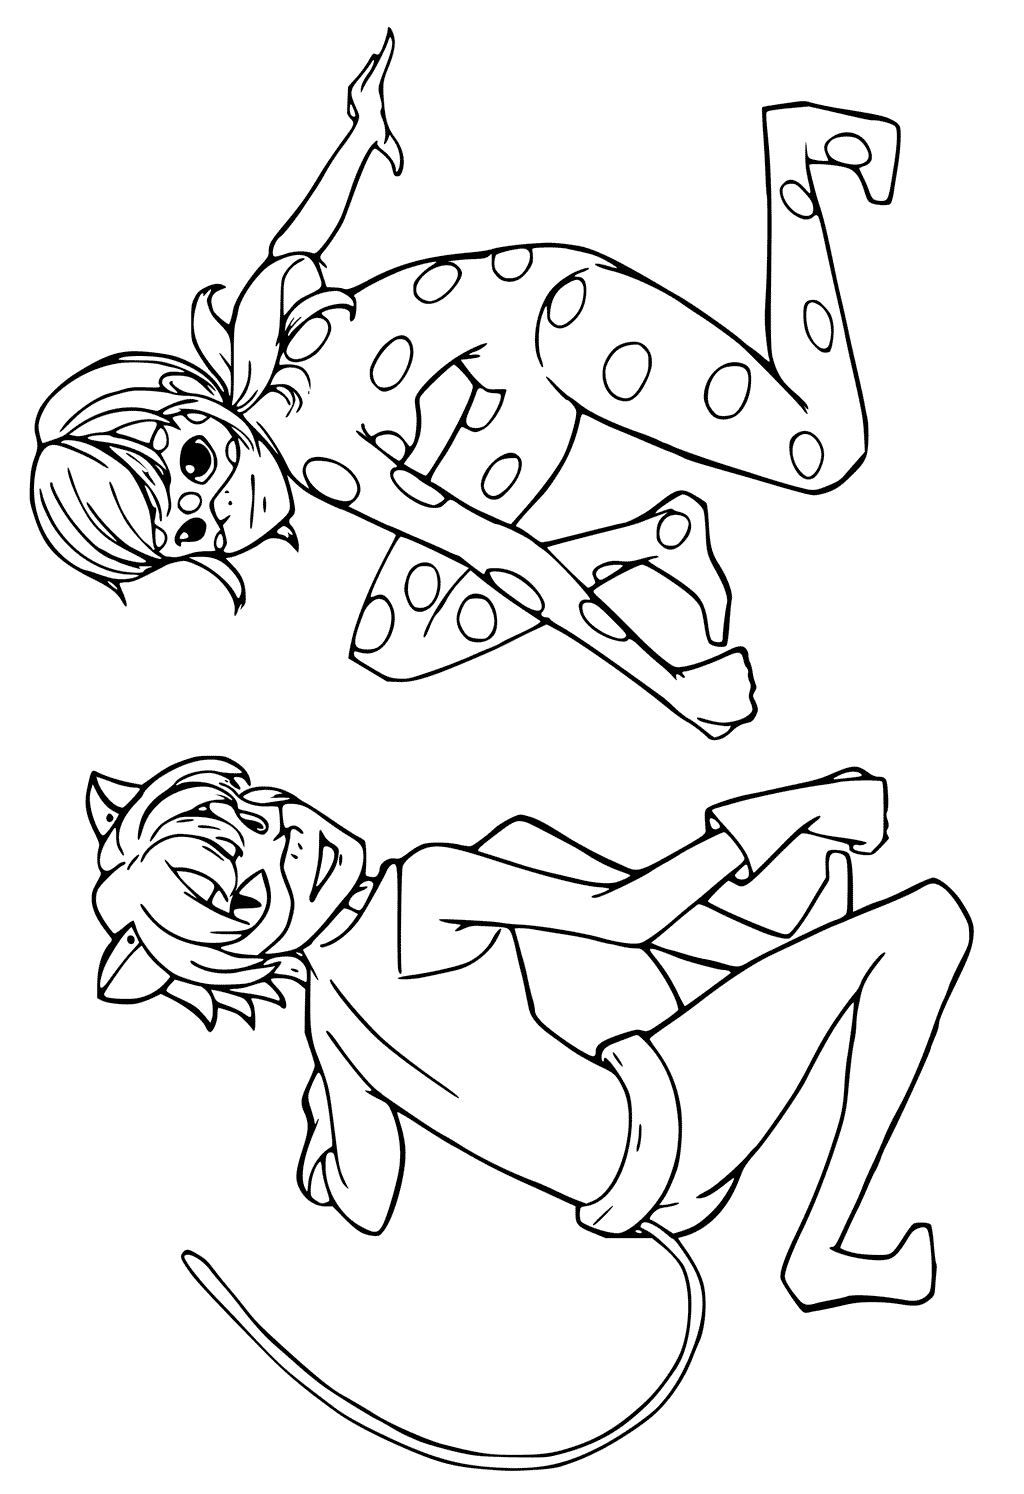 Coloring page miraculous tales of ladybug and cat noir for Disegni da colorare lady bug